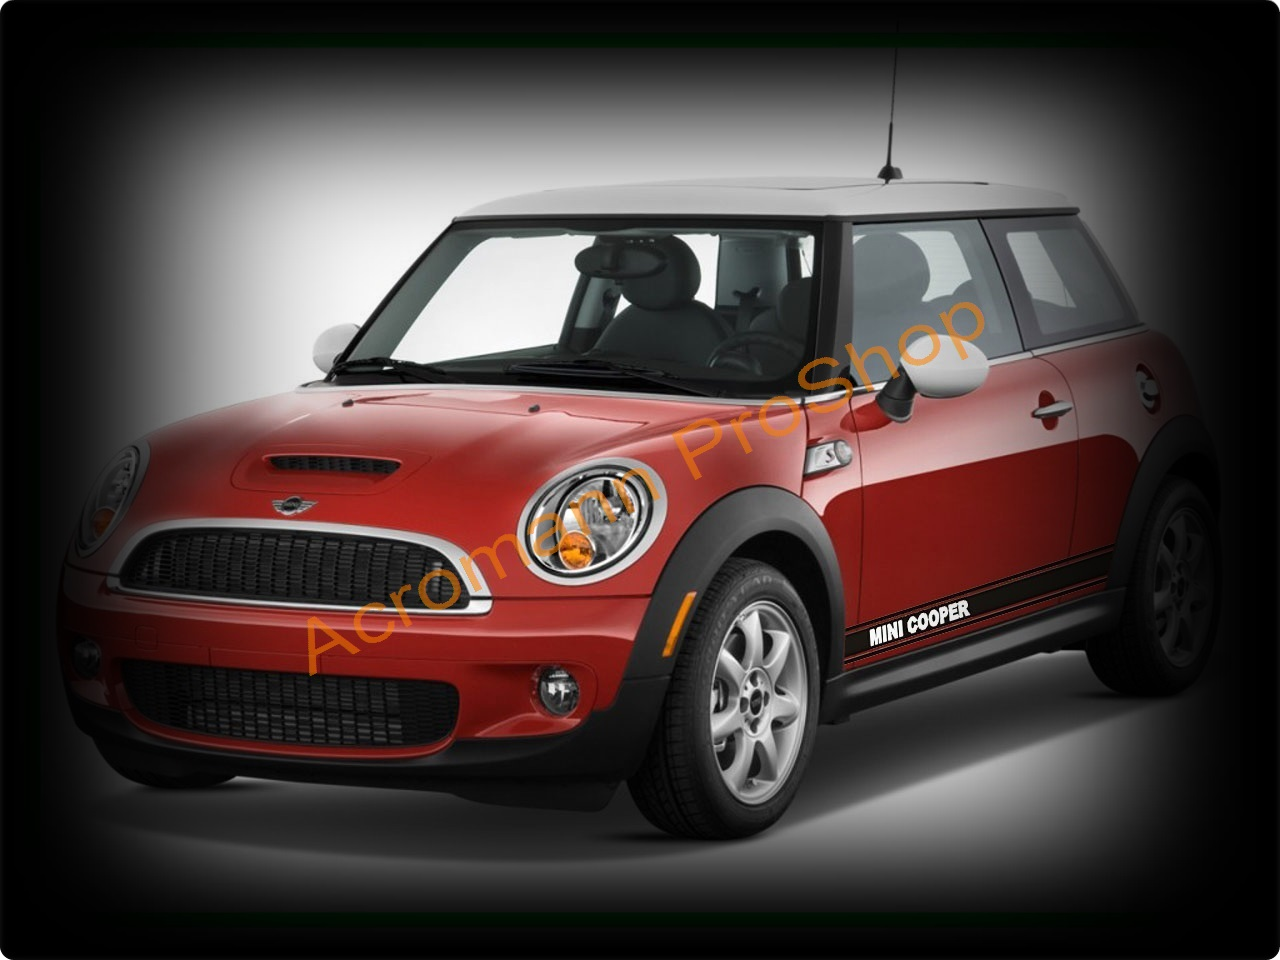 Mini Cooper Side Stripe Door Decal (Style#2) x 1pair (LHS & RHS)